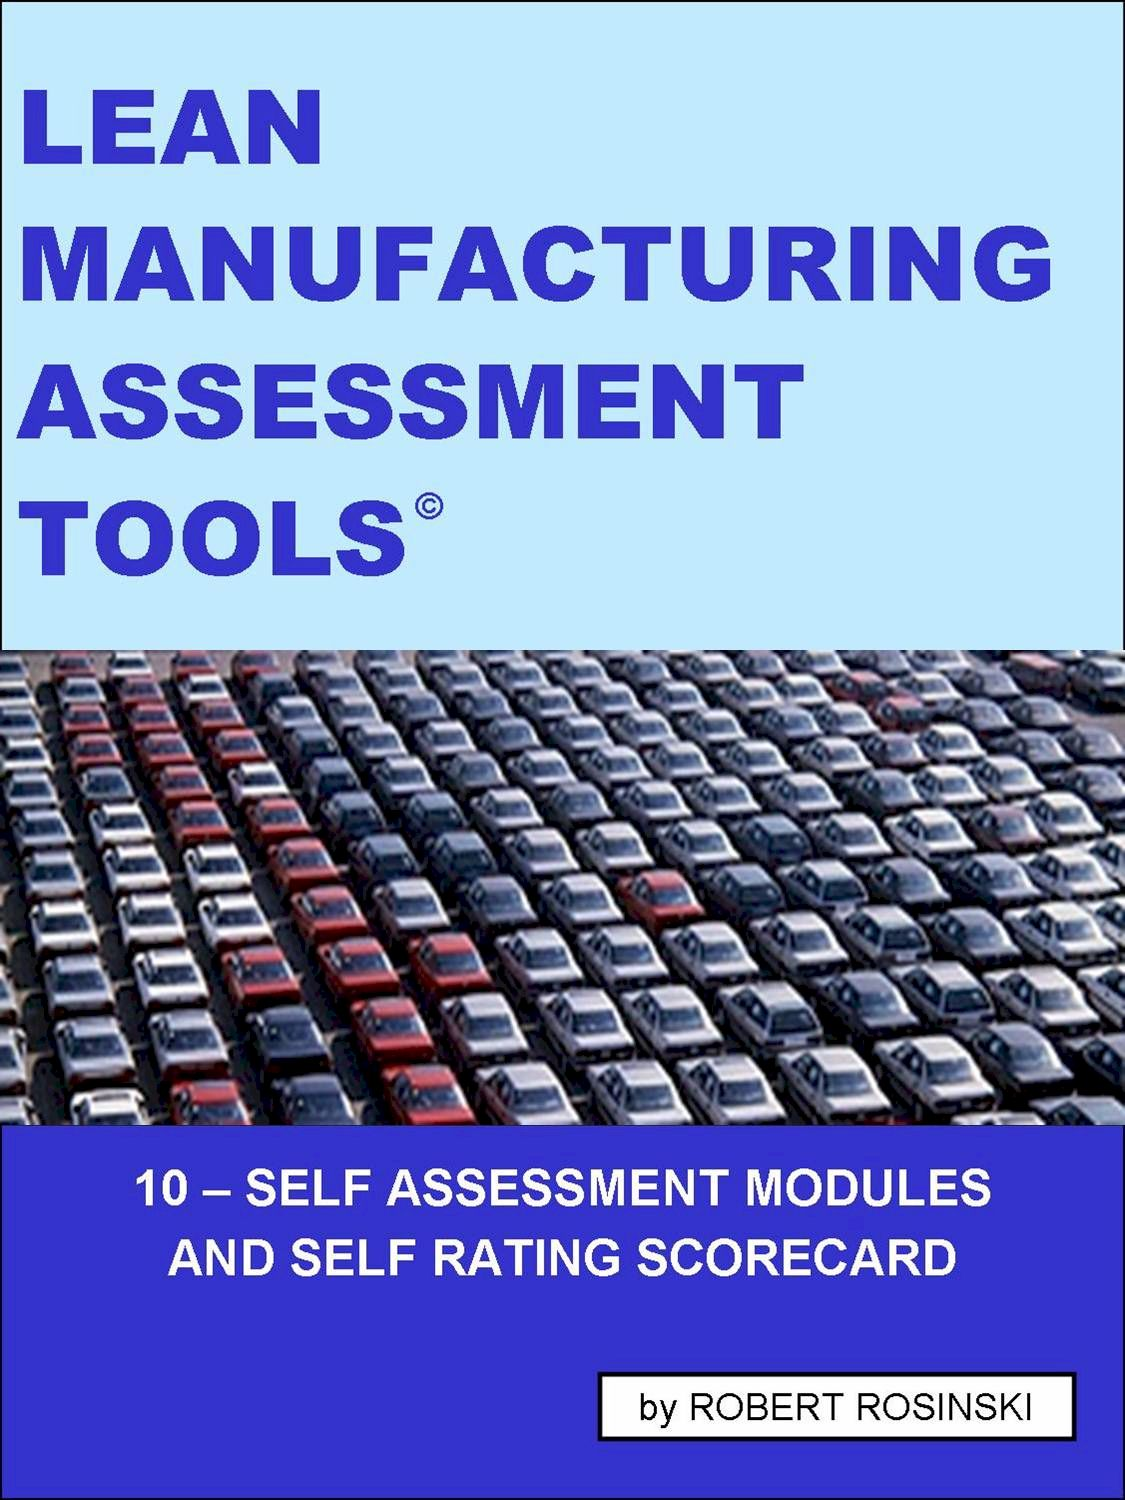 Lean Manufacturing Assessment